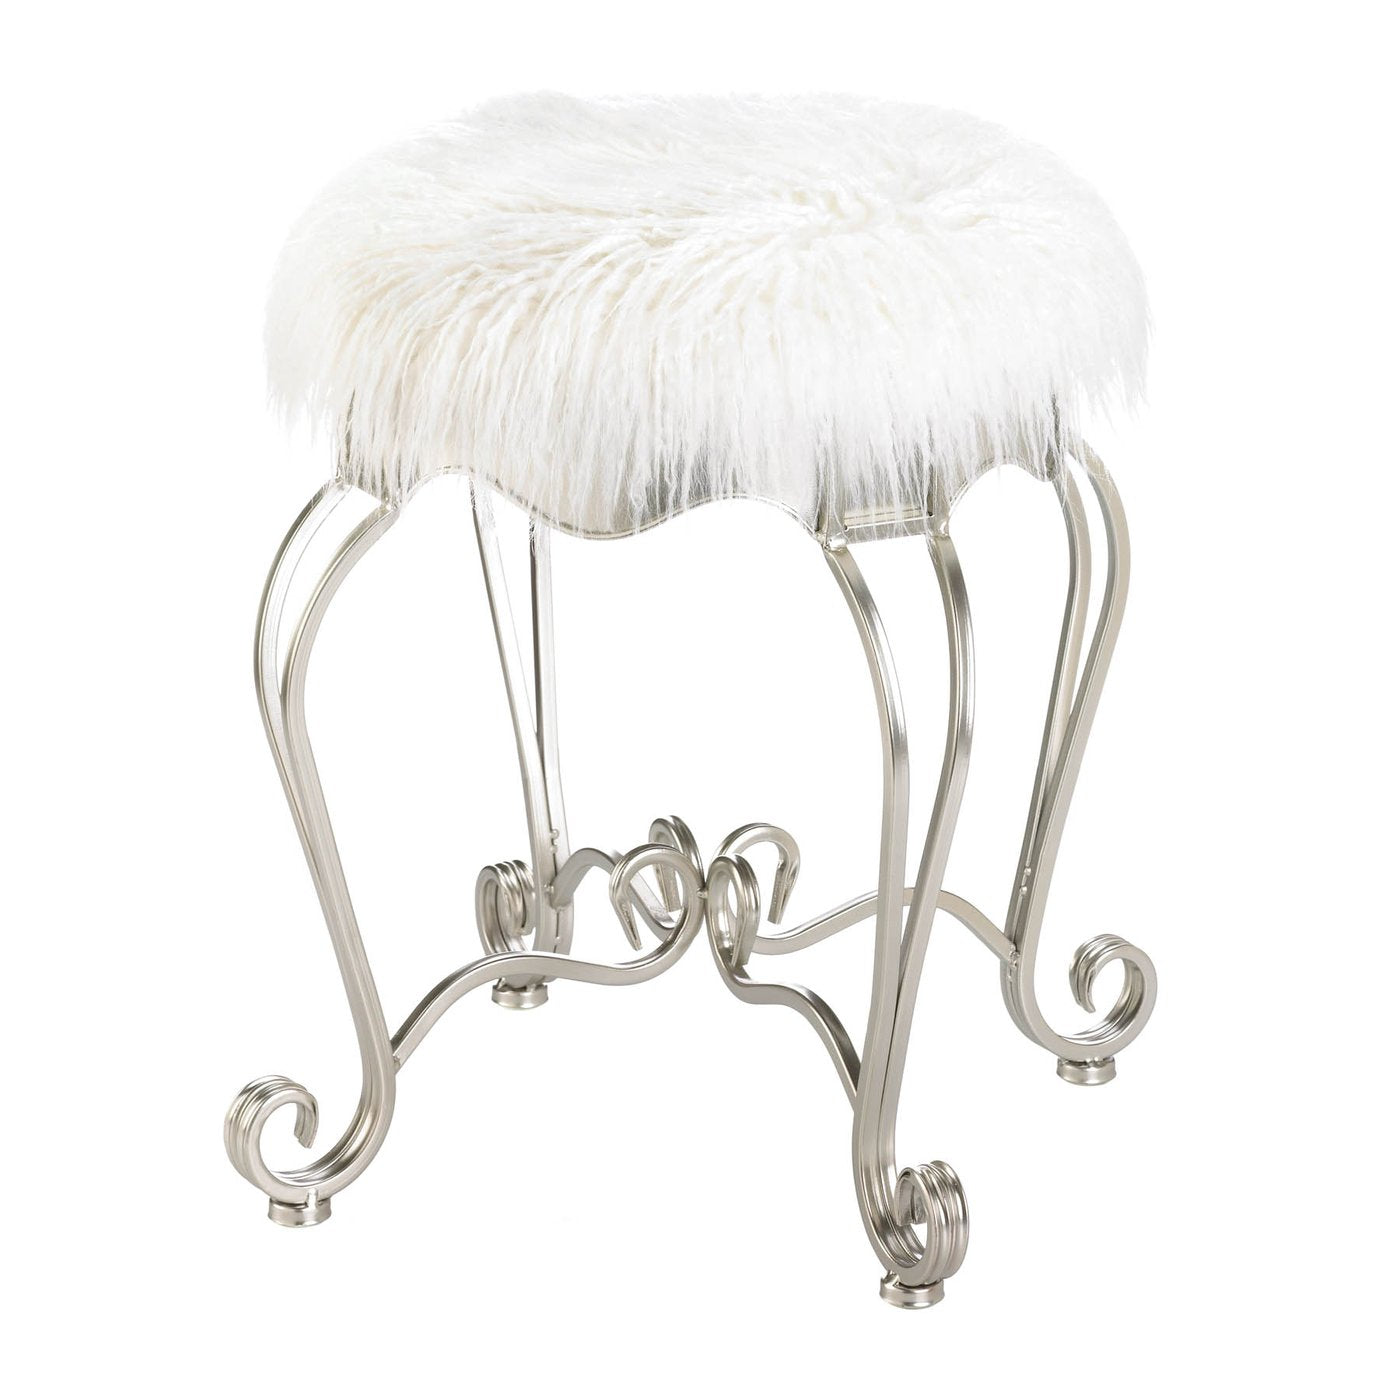 Fur Stool With Scroll Legs - Shop Stool - DARRA HOME